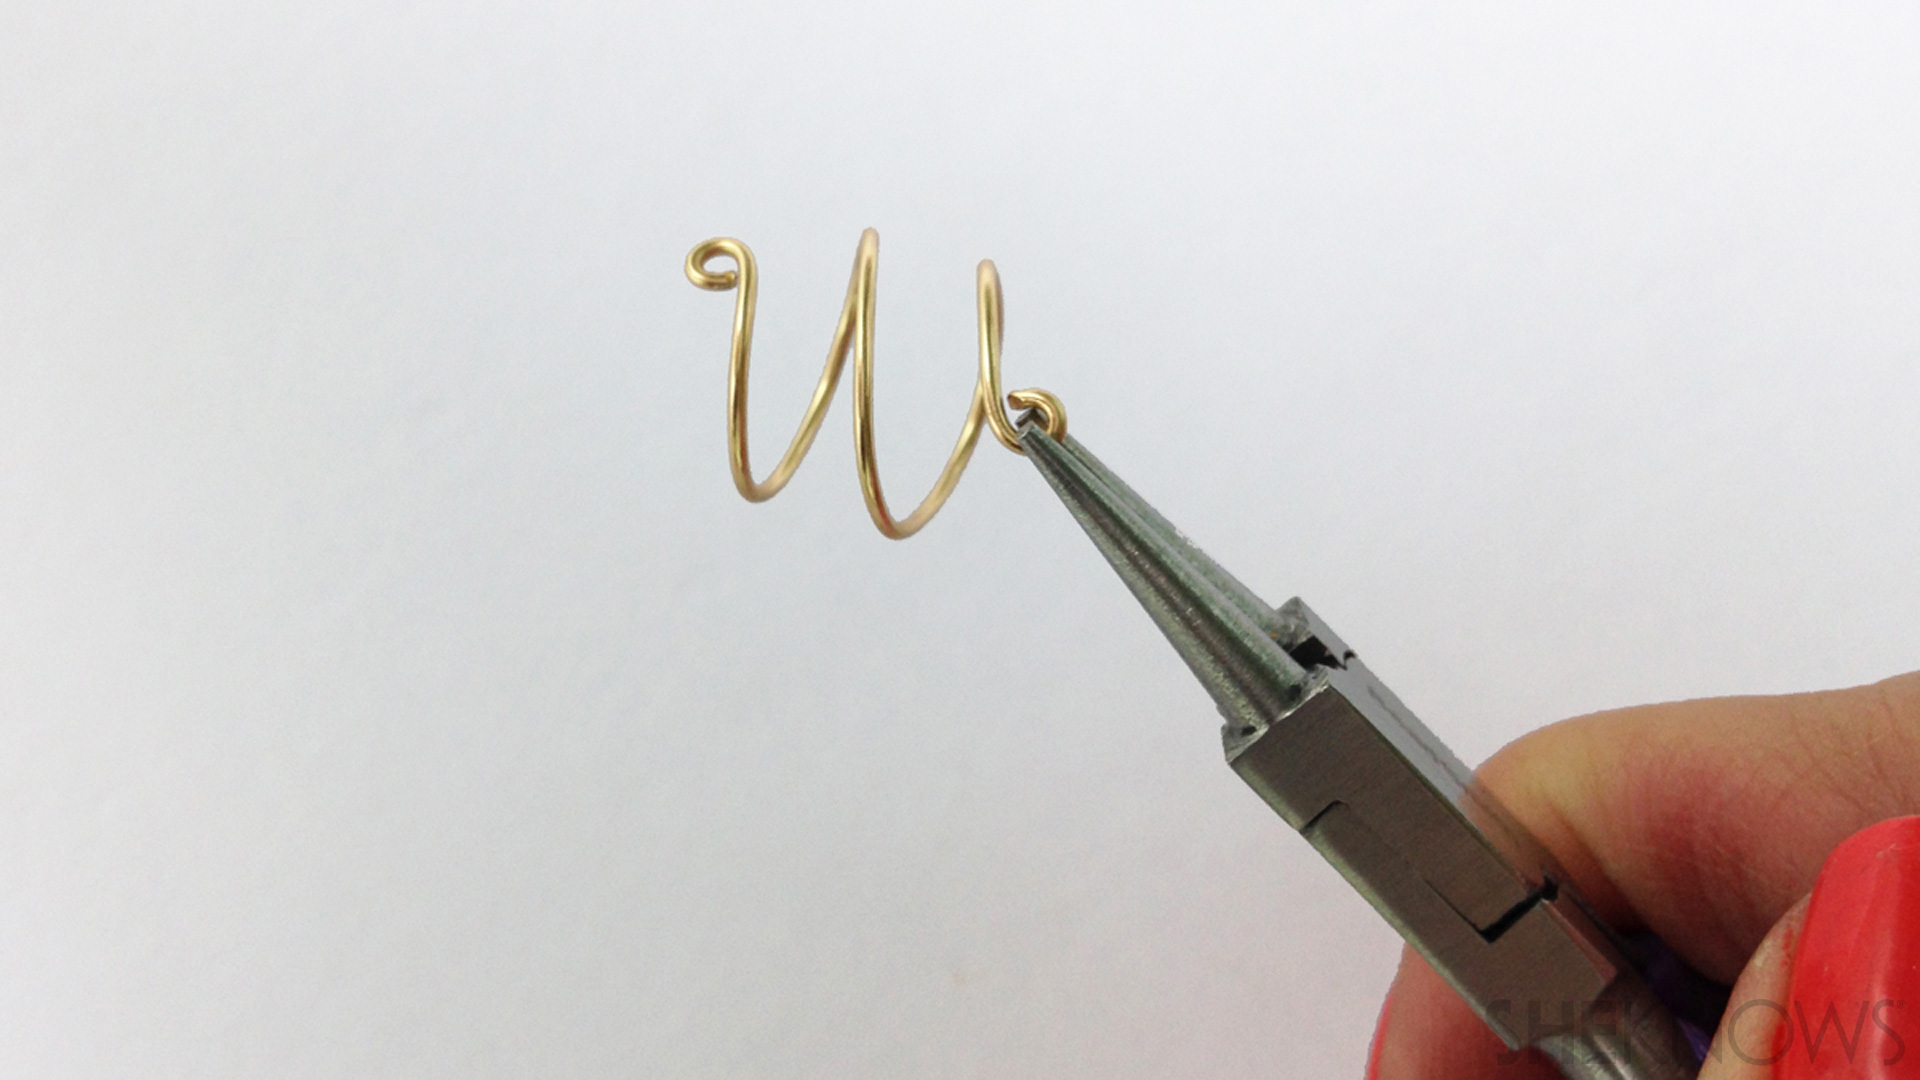 Using pliers, curl the ends into loops